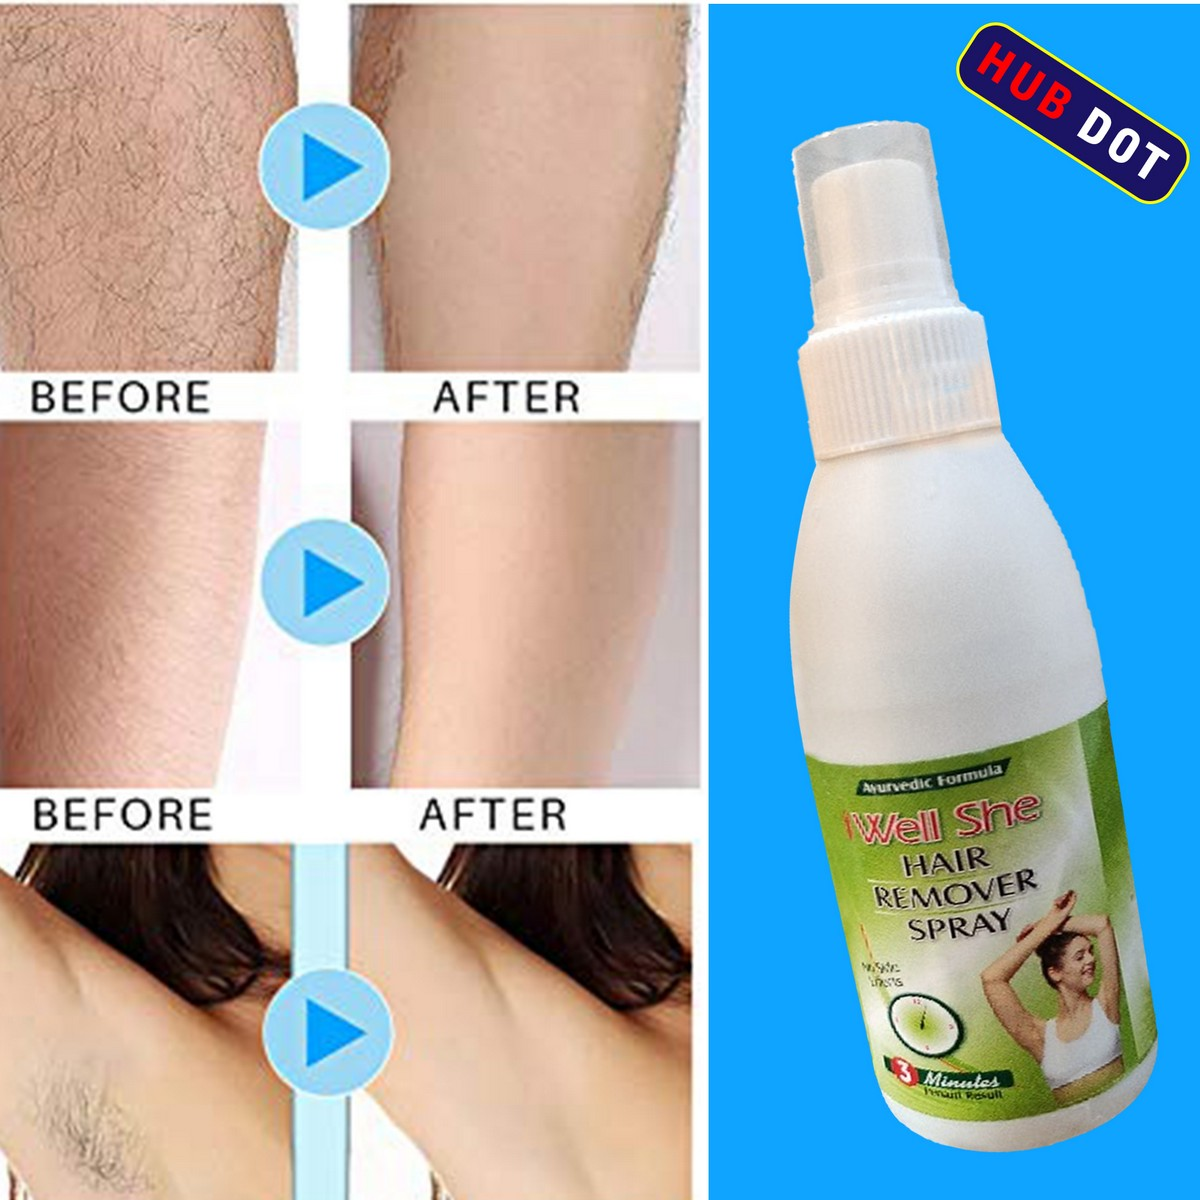 Hair Remover Spray (70 ml) specially for Men and Women